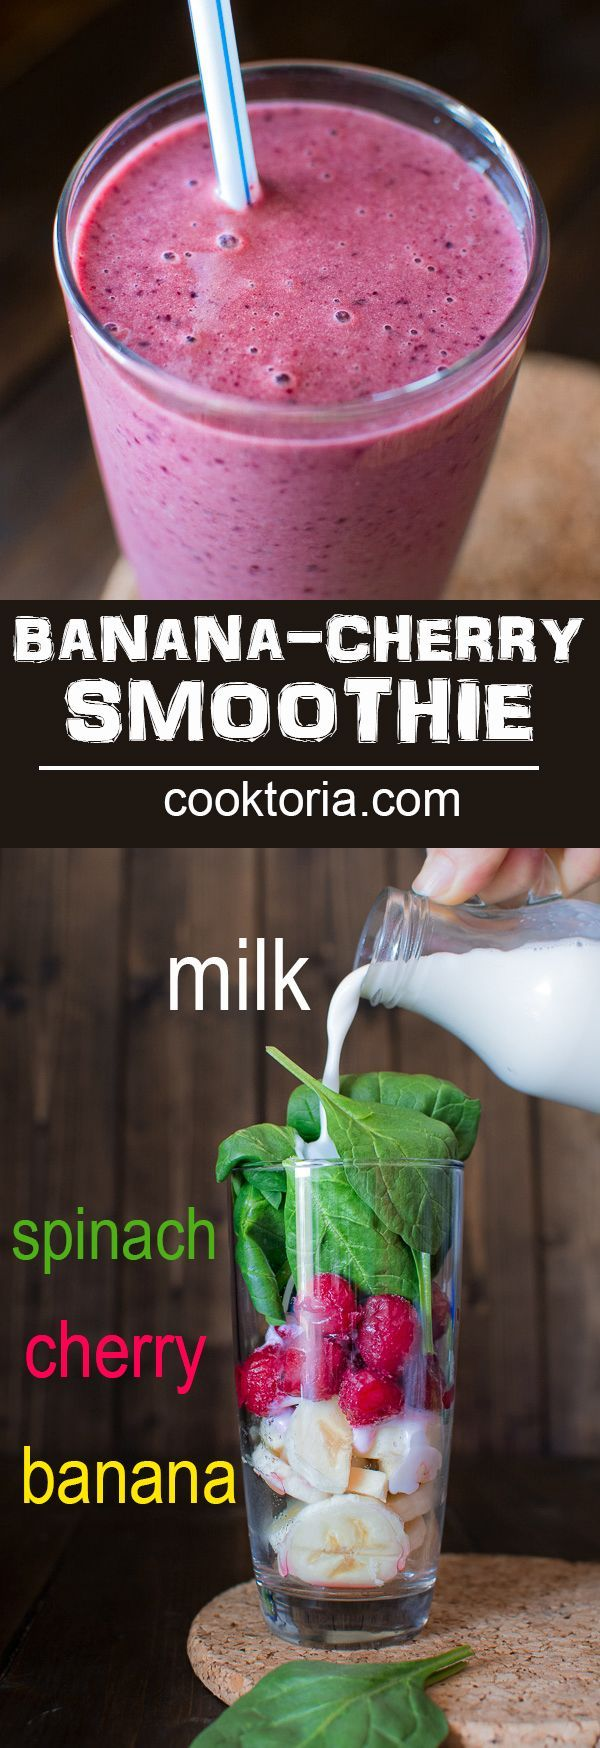 You're 5 minutes and 4 ingredients away from this refreshing and healthy Cherry Spinach Smoothie. It makes a perfect breakfast or mid-day snack! ❤ http://COOKTORIA.COM